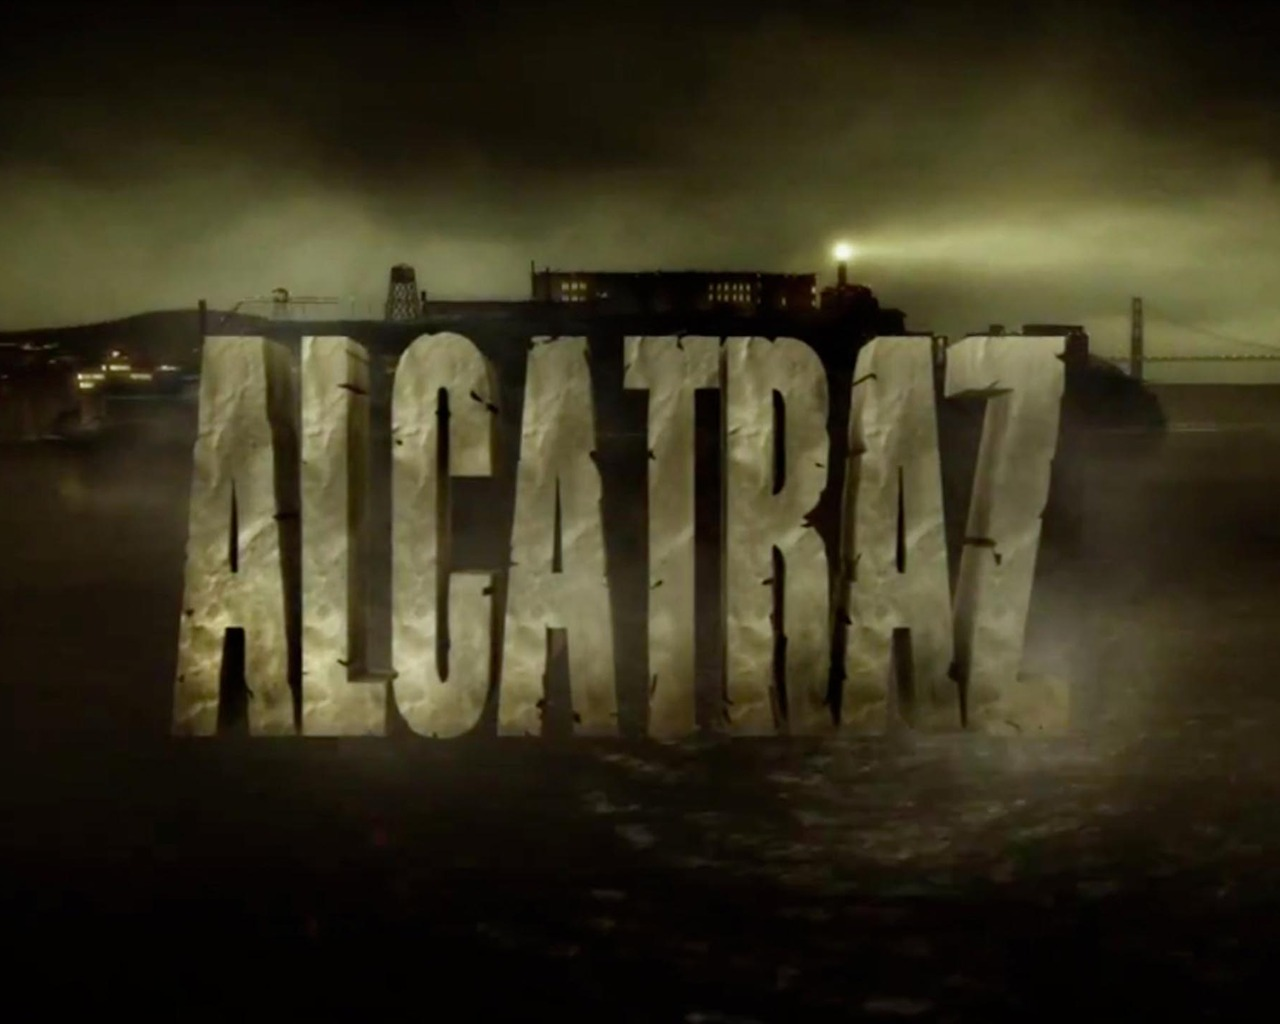 alcatraz american tv series hd wallpaper 06 preview | 10wallpaper